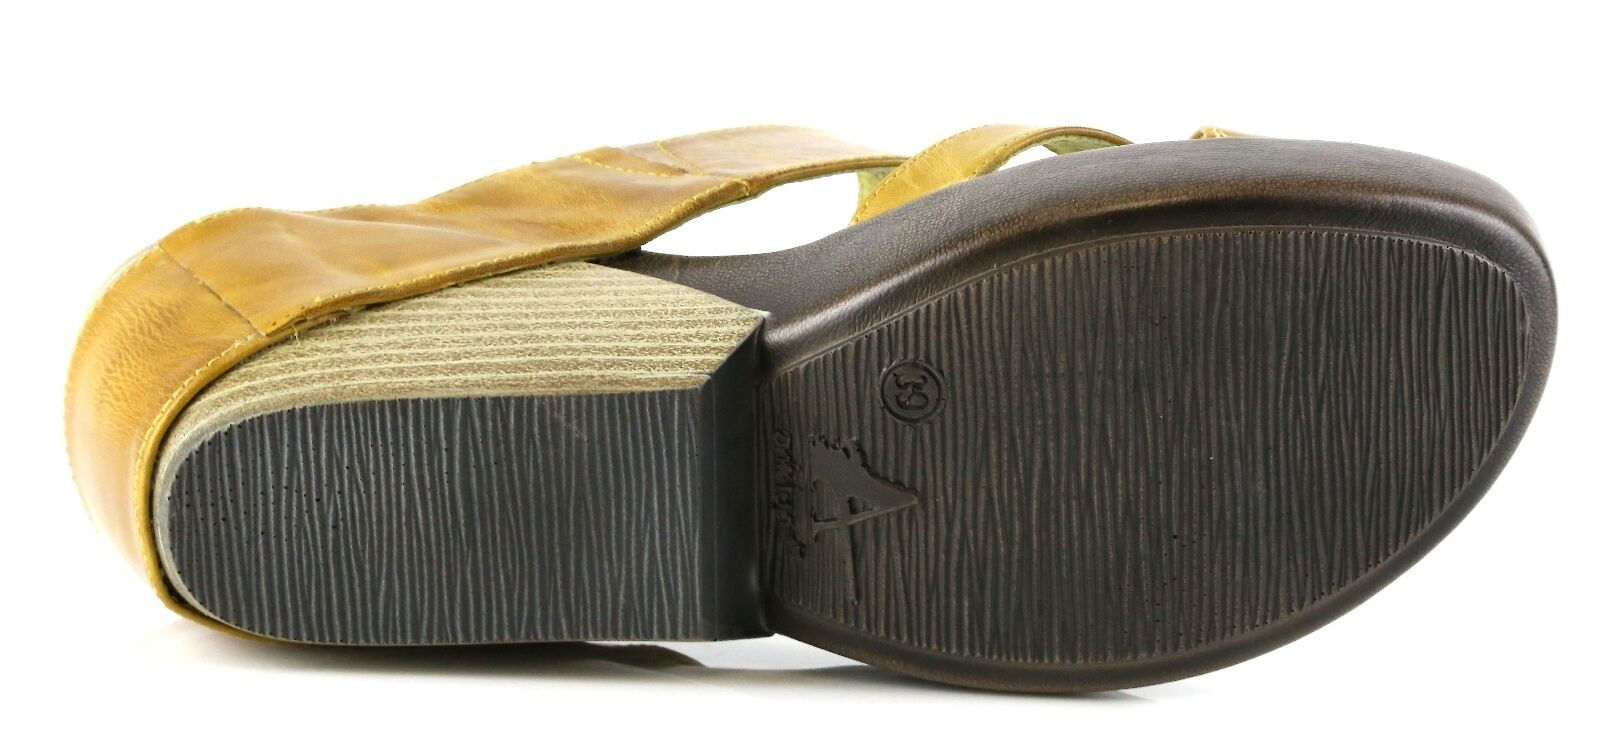 Antelope 912 Lime Leather Wedge Mule Sandals Sandals Sandals 8810 Taille 39 EU NEW 859097